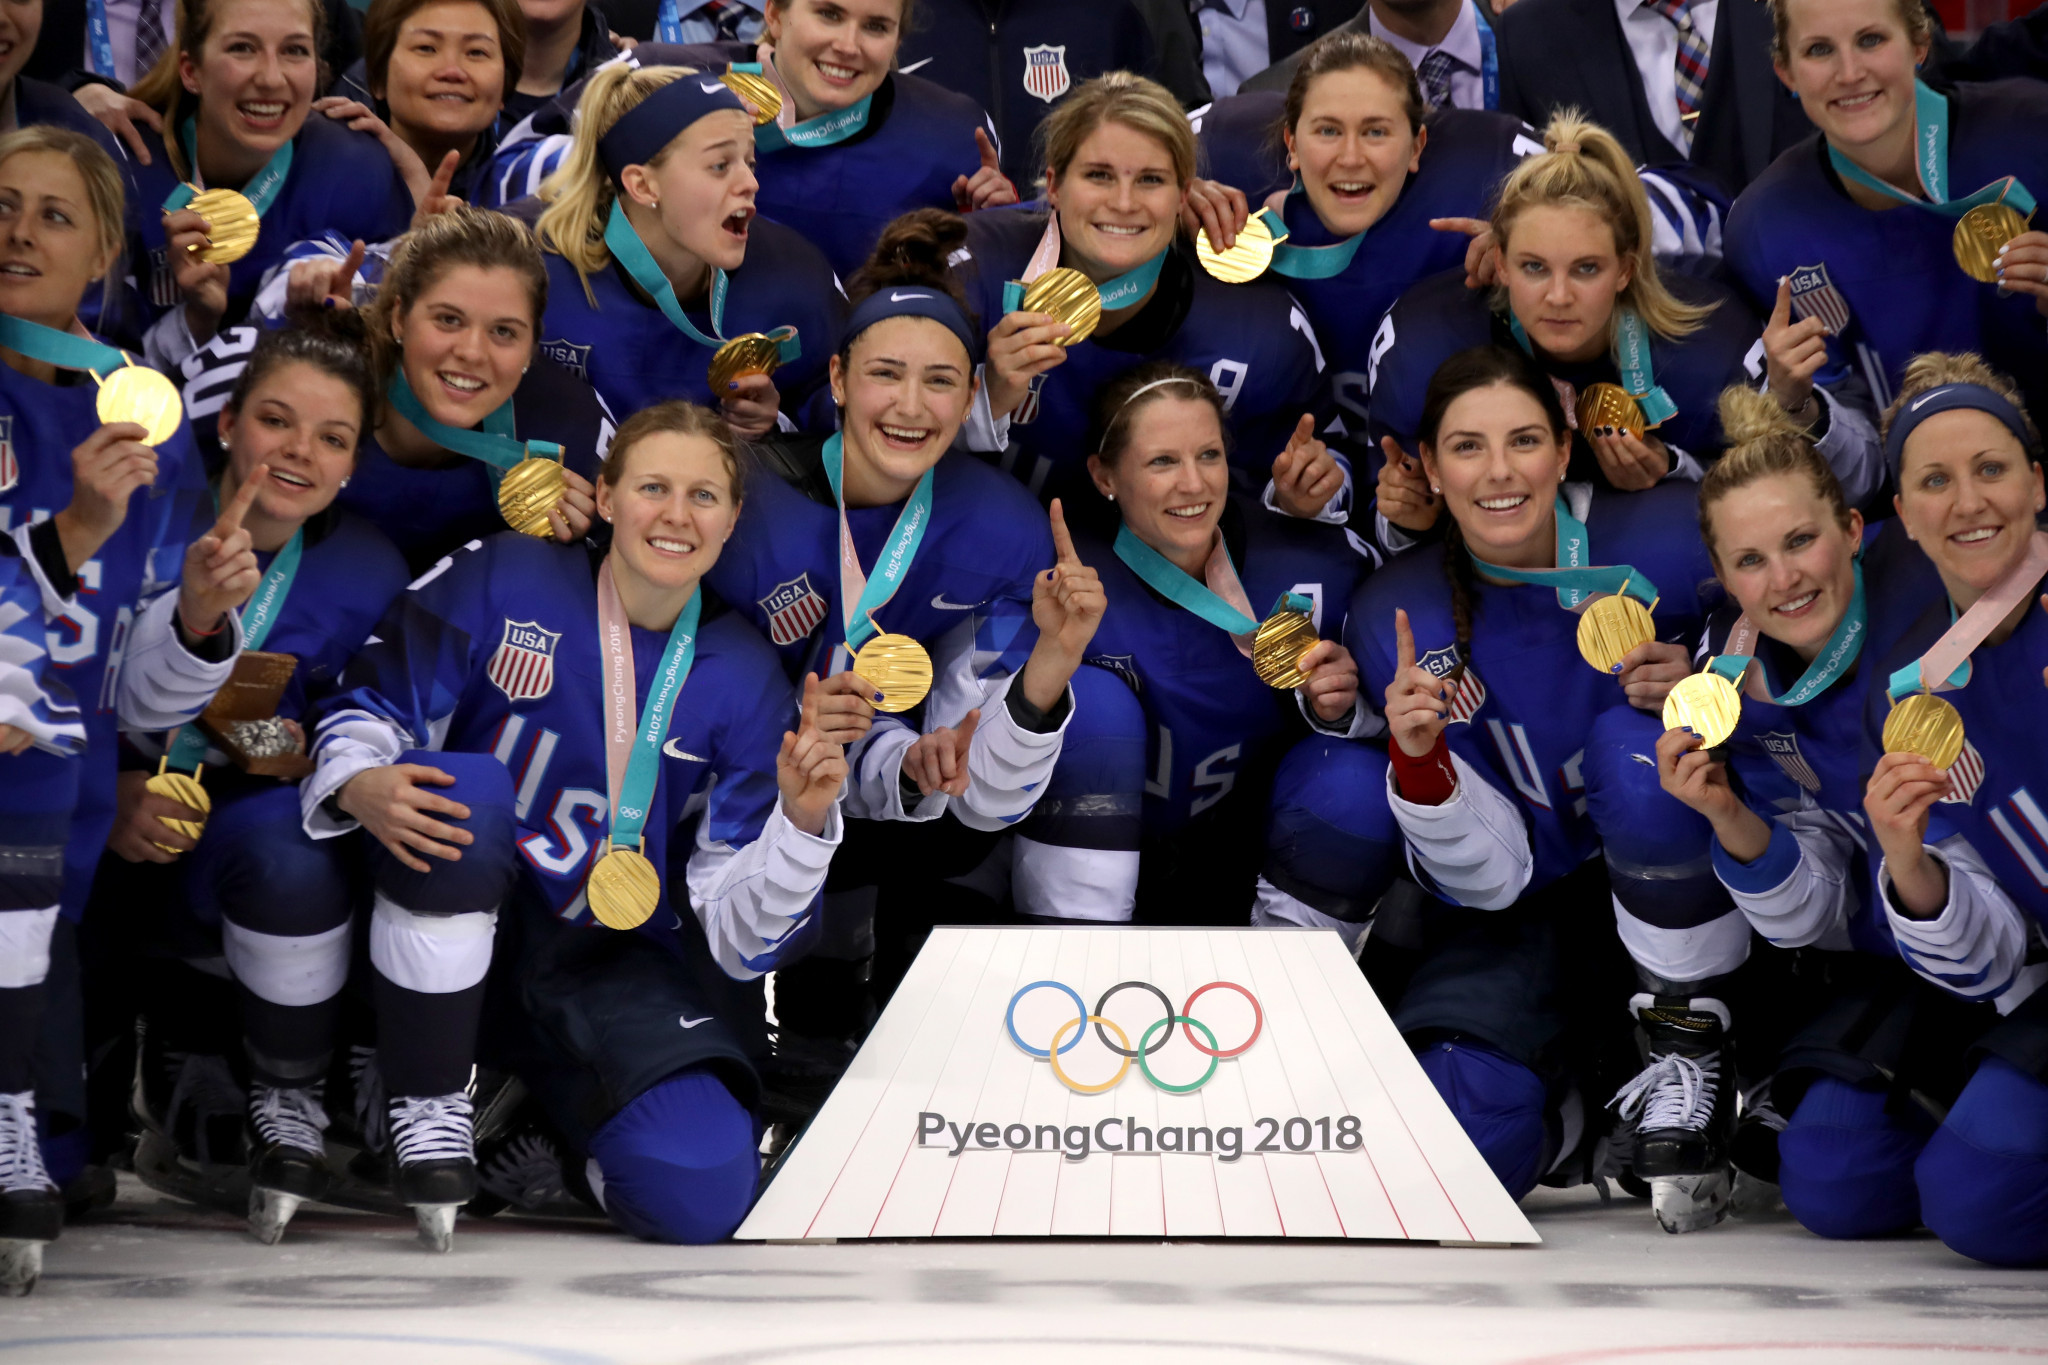 The United States had not won the women's ice hockey gold medal since the inaugural tournament at Nagano 1998 ©Getty Images